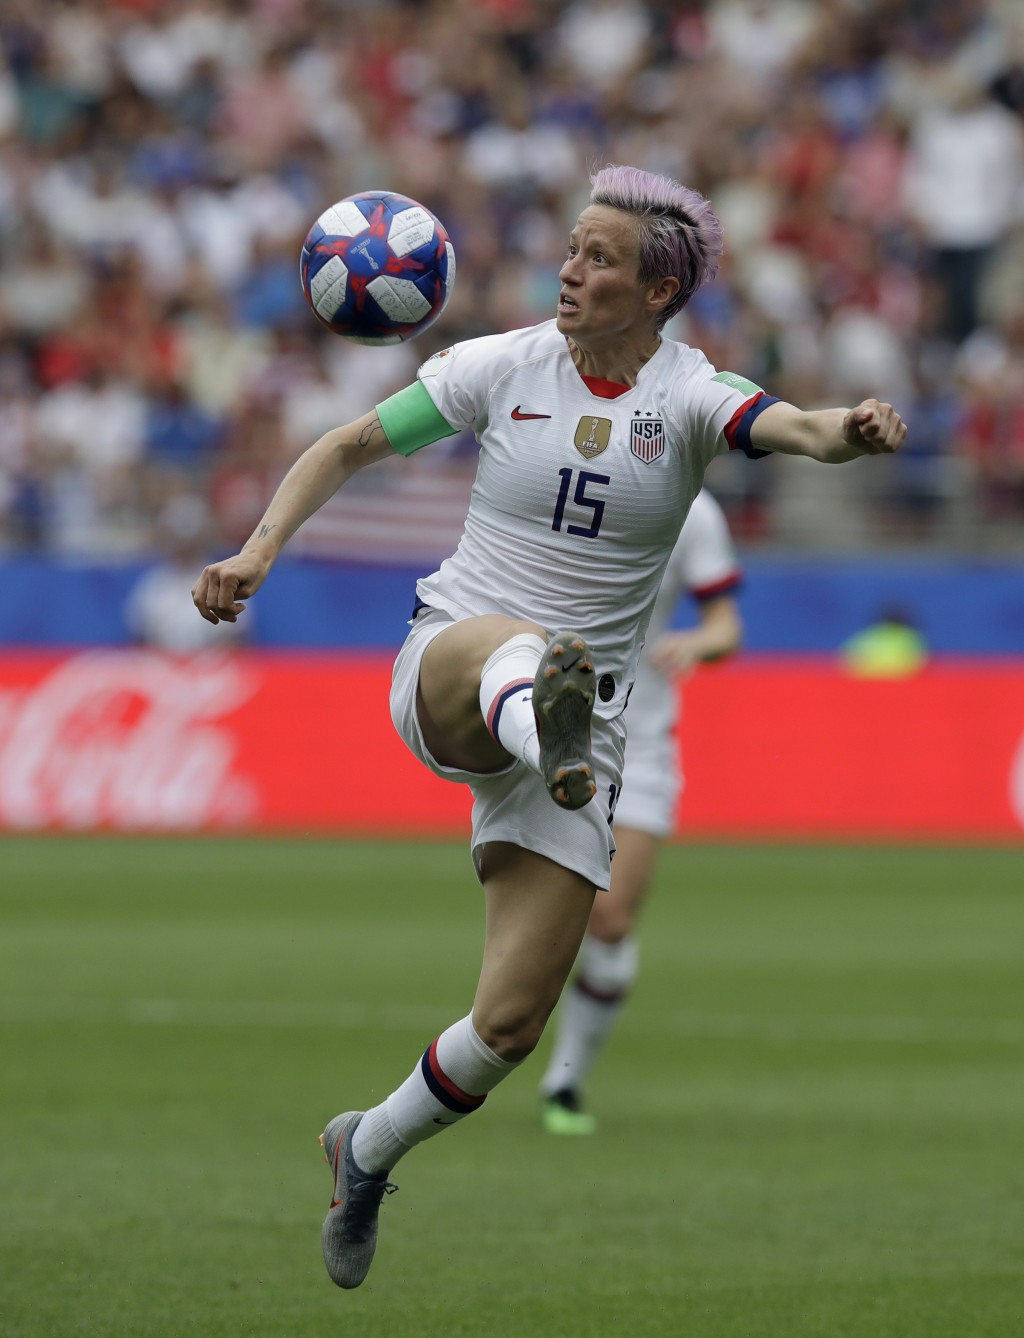 United States'Megan Rapinoe controls the ball during the Women's World Cup round of 16 soccer match between Spain and US at the Stade Auguste-Delaune ...